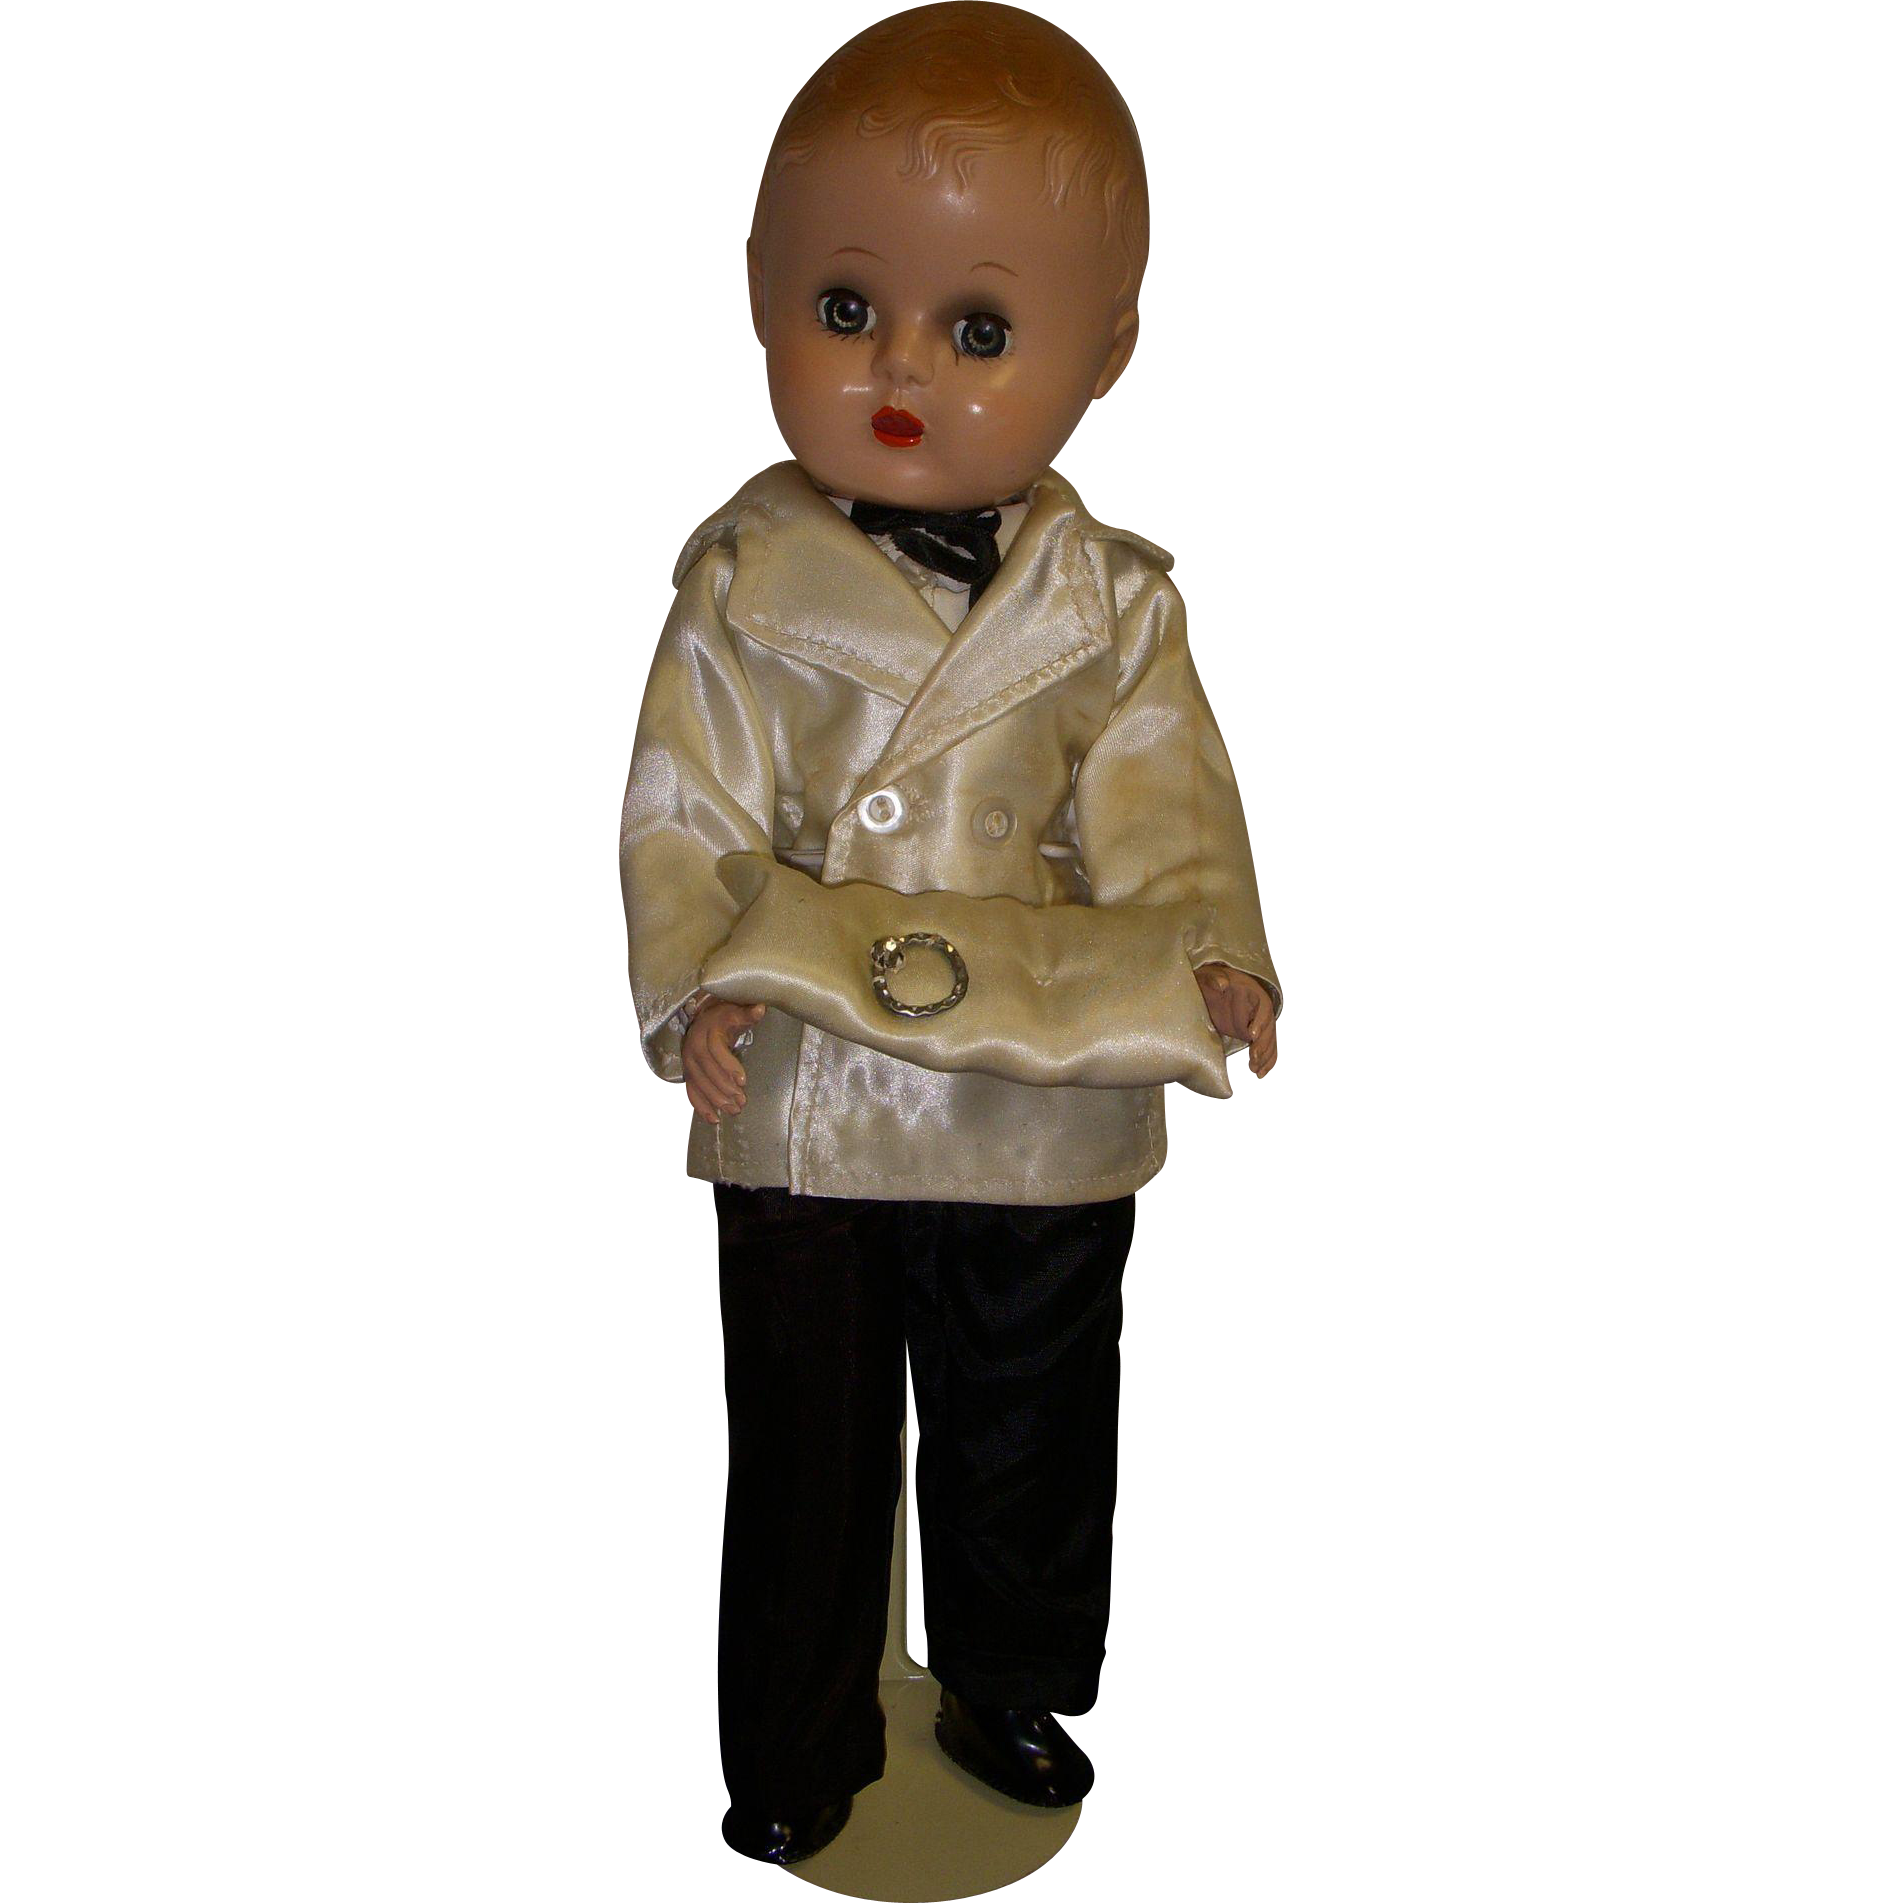 Vintage 1950s Hard Plastic Boy Doll